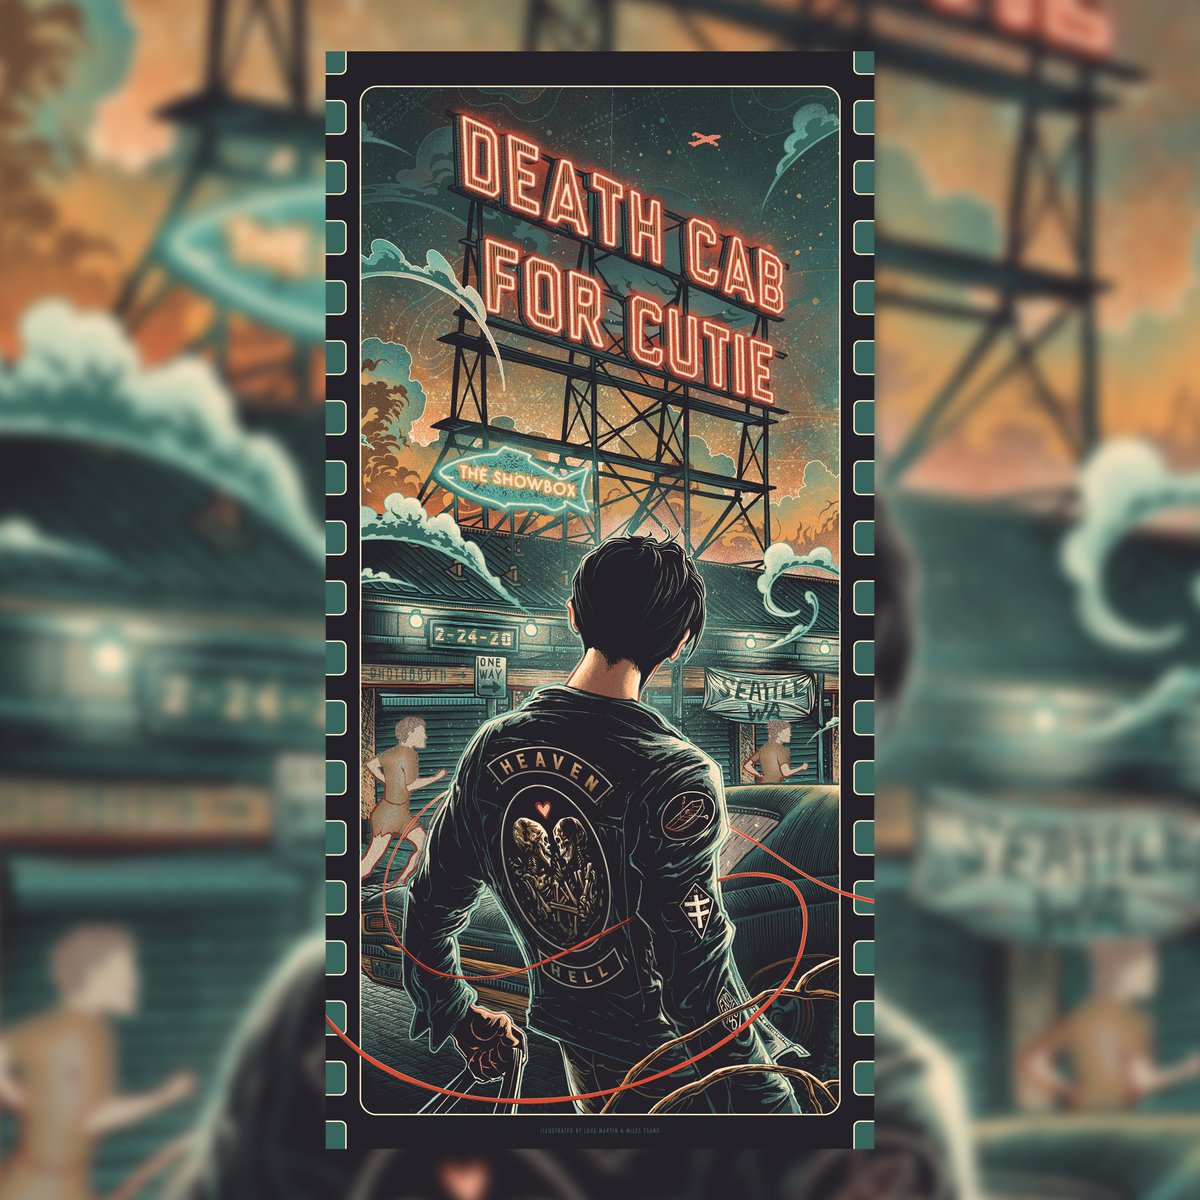 Death Cab For Cutie On Twitter Our Showbox Shows Start Tonight We Can T Wait We Ll Have These Amazing Screen Printed Posters Designed By Luke Martin And Milestsang Available For Purchase At The Shows It is regarded as one of the best free android apps as it allows users to. death cab for cutie on twitter our